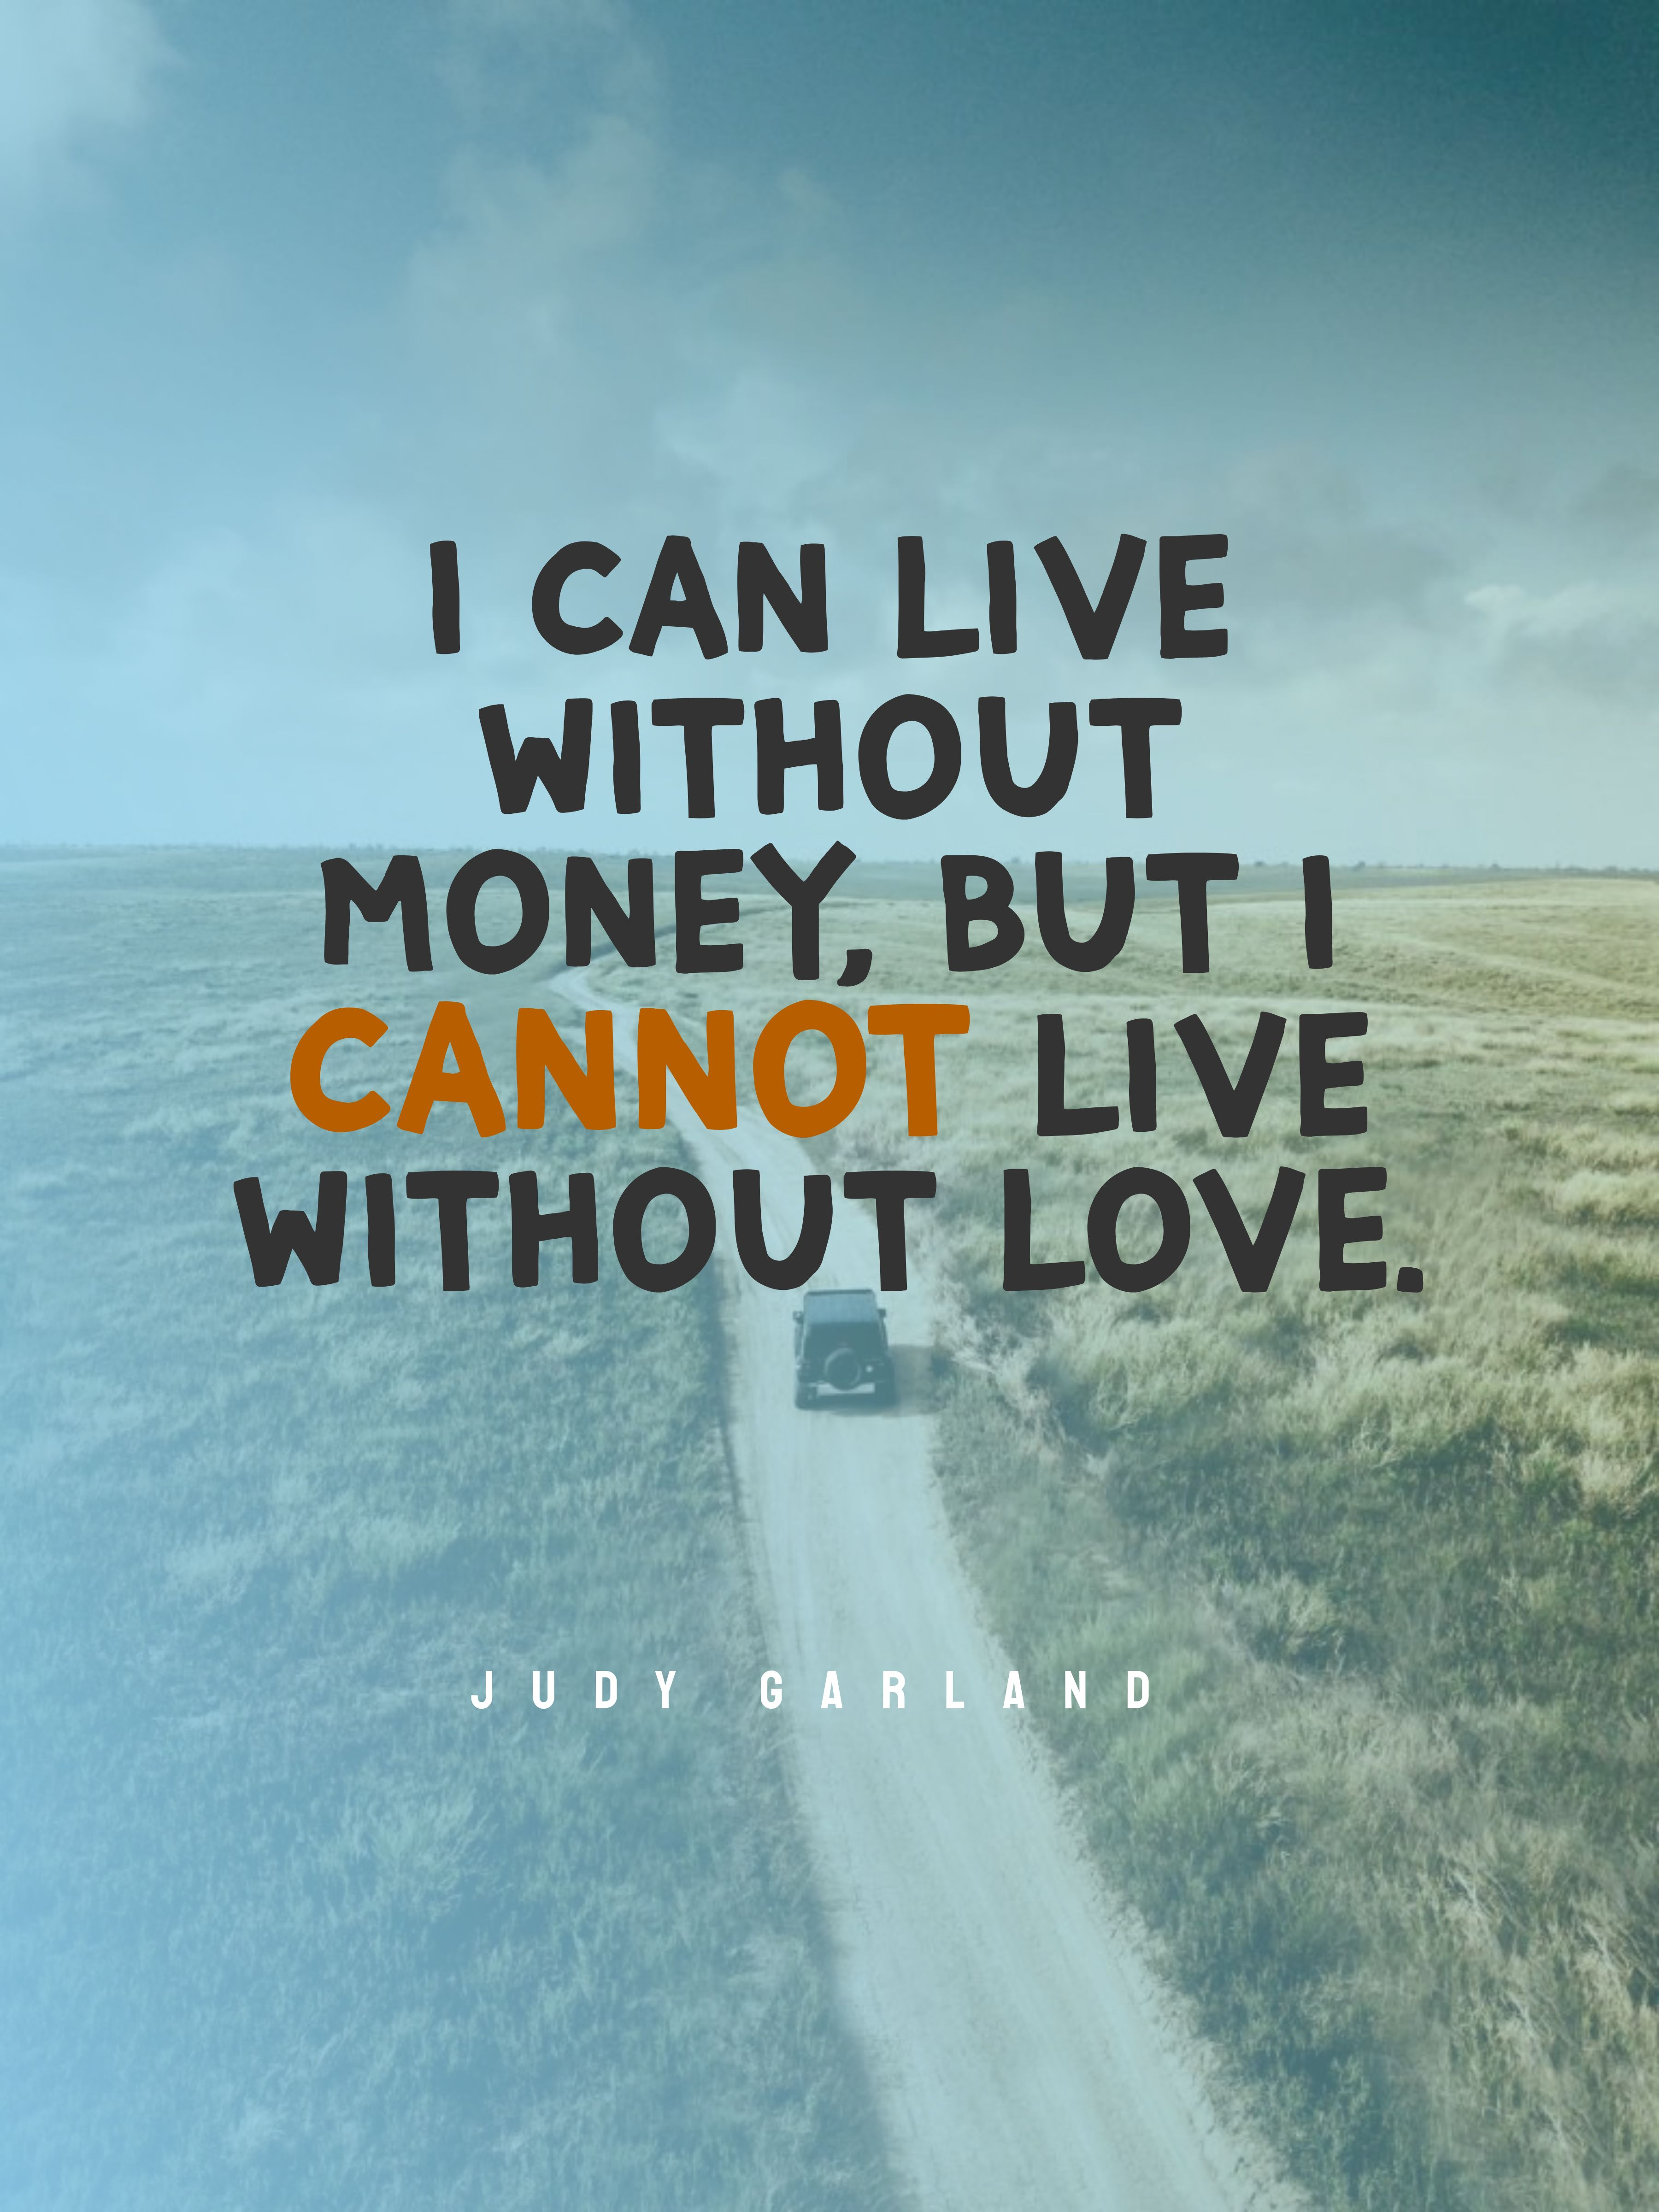 Quotes image of I can live without money, but I cannot live without love.